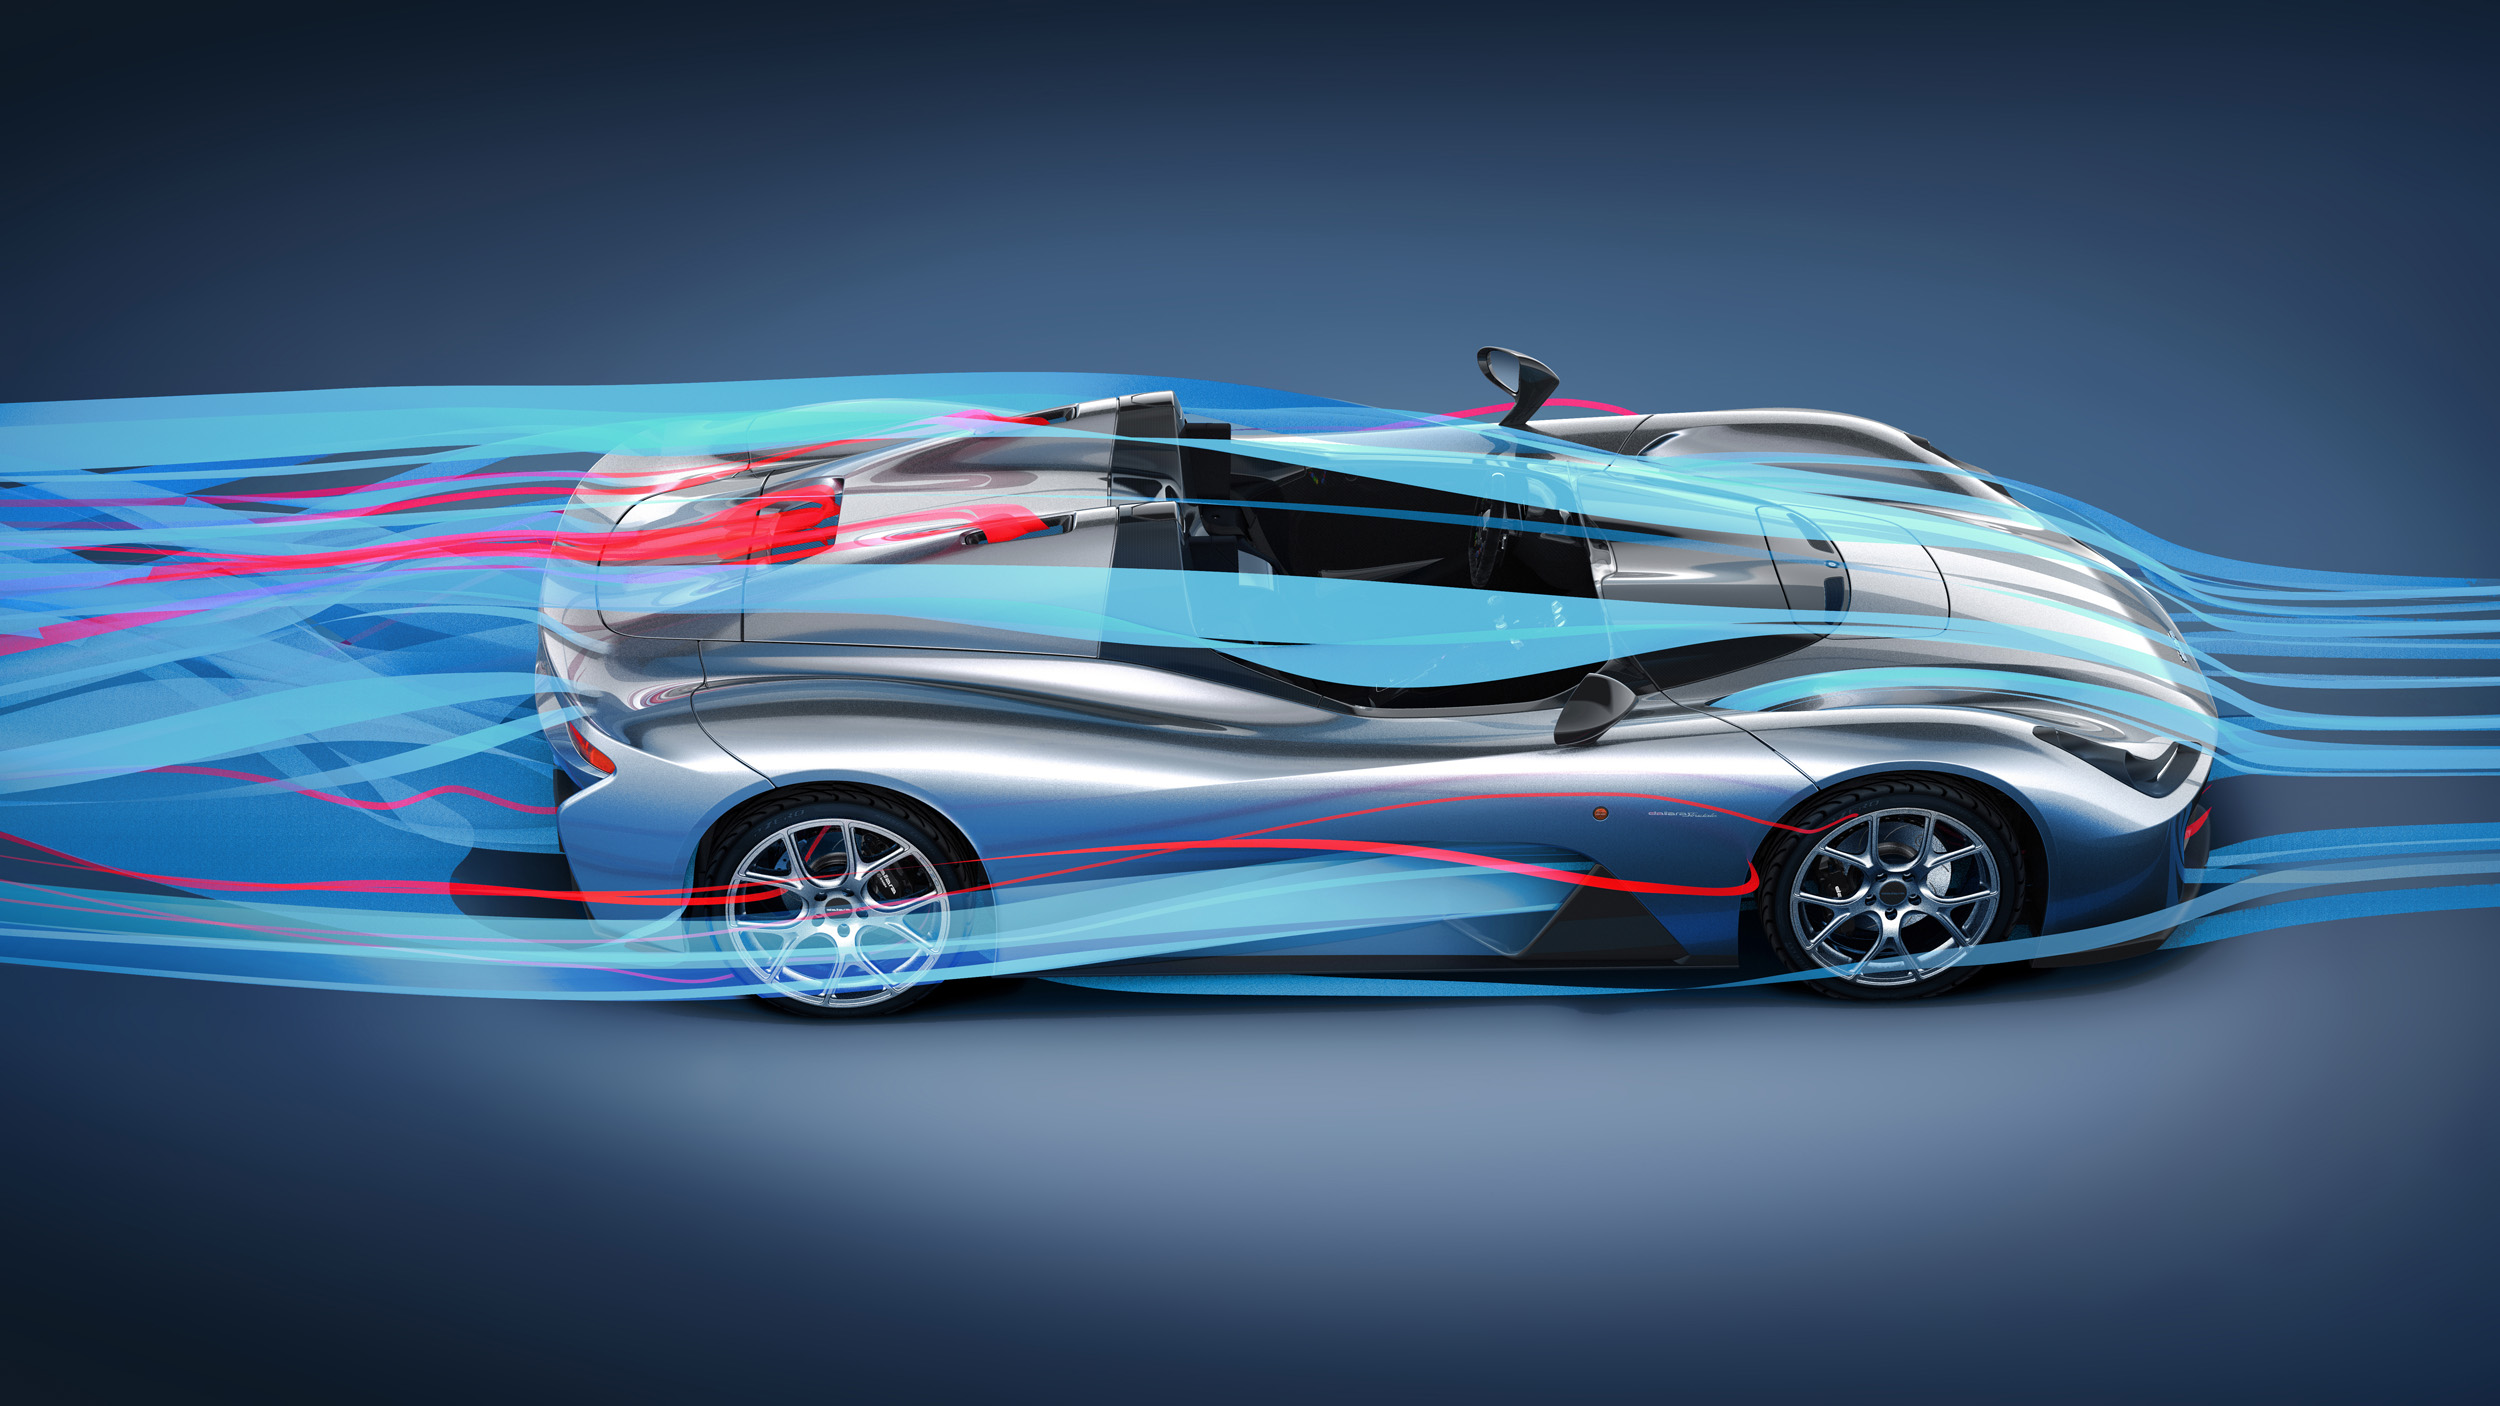 EXTREME AERODYNAMIC efficiency (2.5 ) and downforce ( up to 810kg )